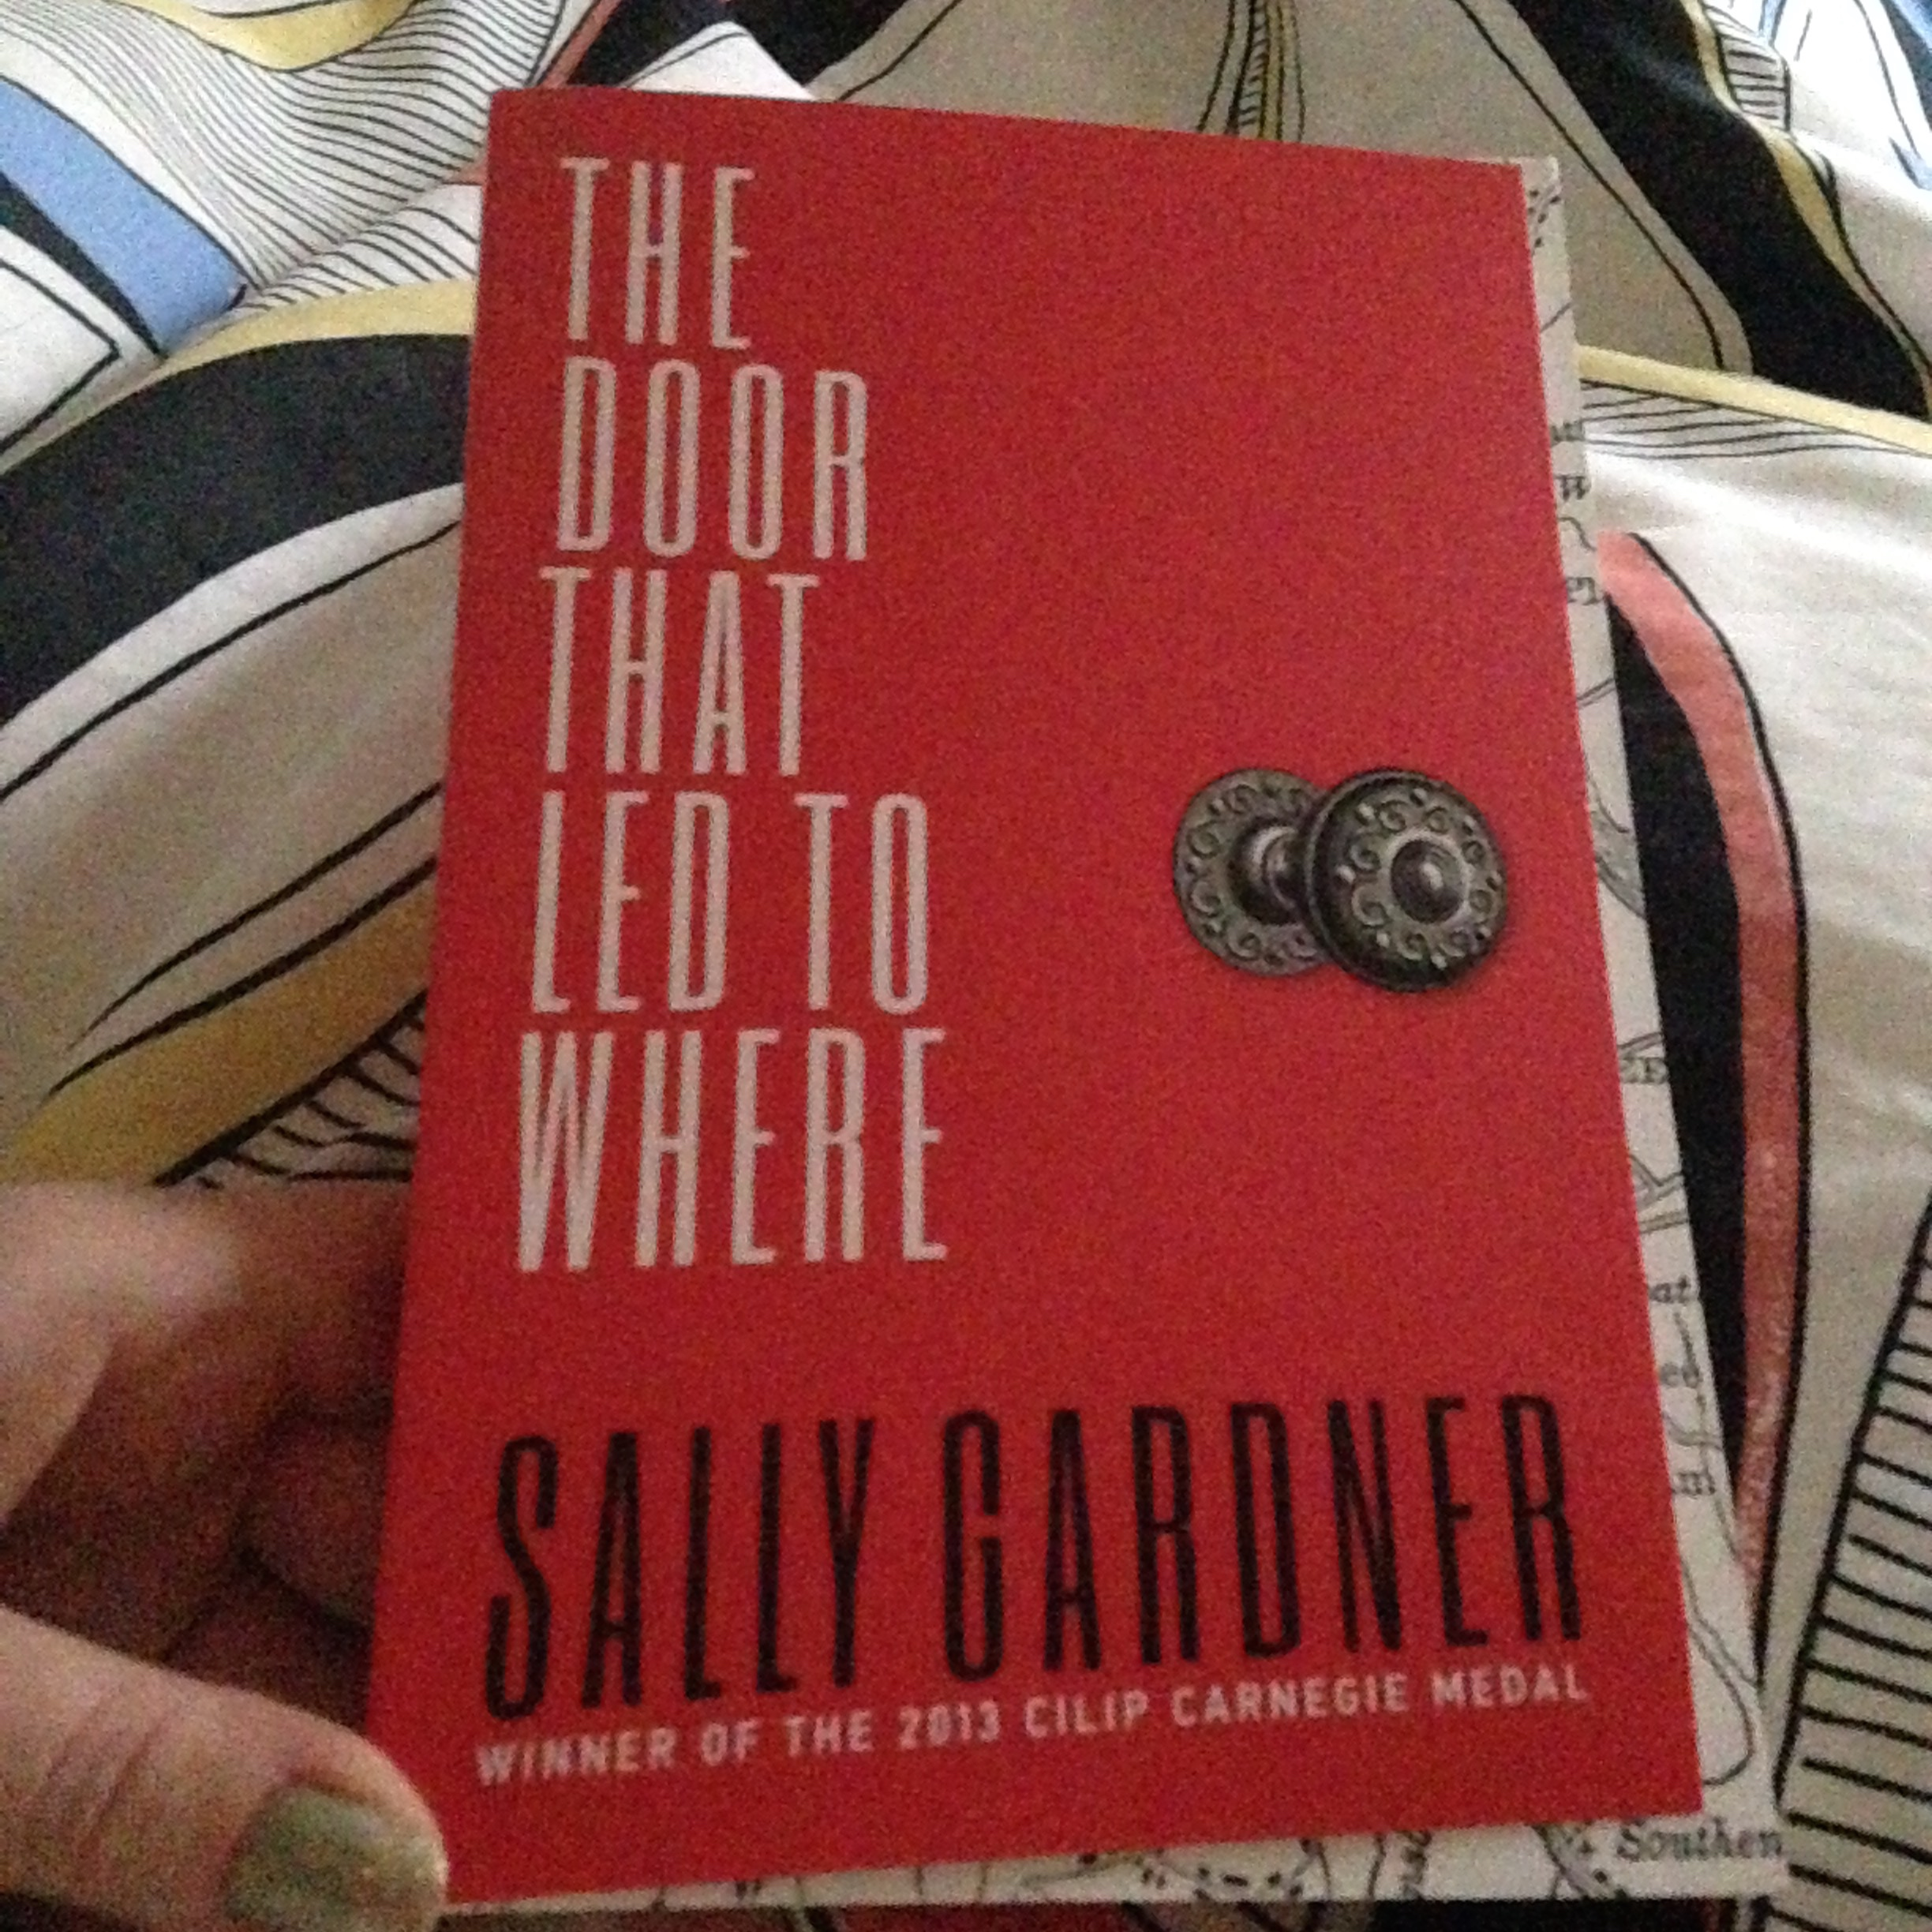 Review: The Door That Led To Where by Sally Gardner